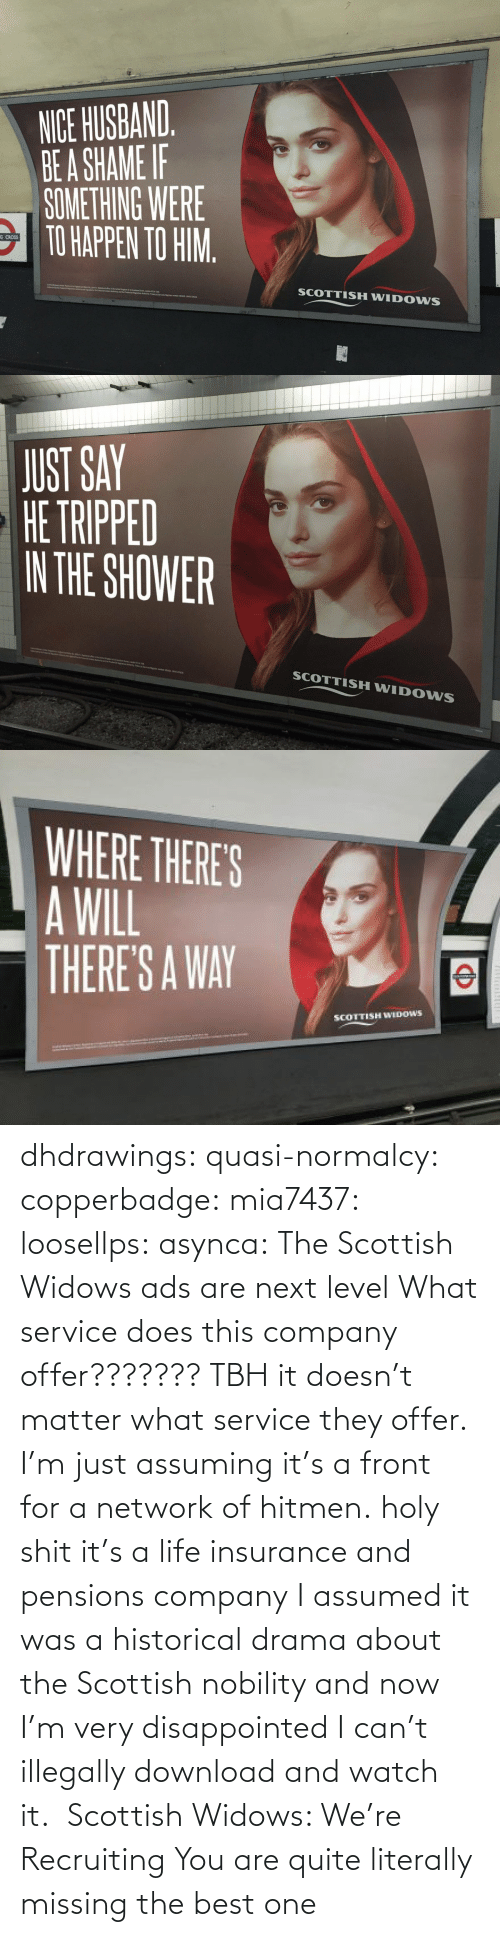 media: dhdrawings:  quasi-normalcy:  copperbadge:  mia7437:  loosellps:  asynca: The Scottish Widows ads are next level What service does this company offer??????? TBH it doesn't matter what service they offer. I'm just assuming it's a front for a network of hitmen.  holy shit it's a life insurance and pensions company  I assumed it was a historical drama about the Scottish nobility and now I'm very disappointed I can't illegally download and watch it.     Scottish Widows: We're Recruiting    You are quite literally missing the best one